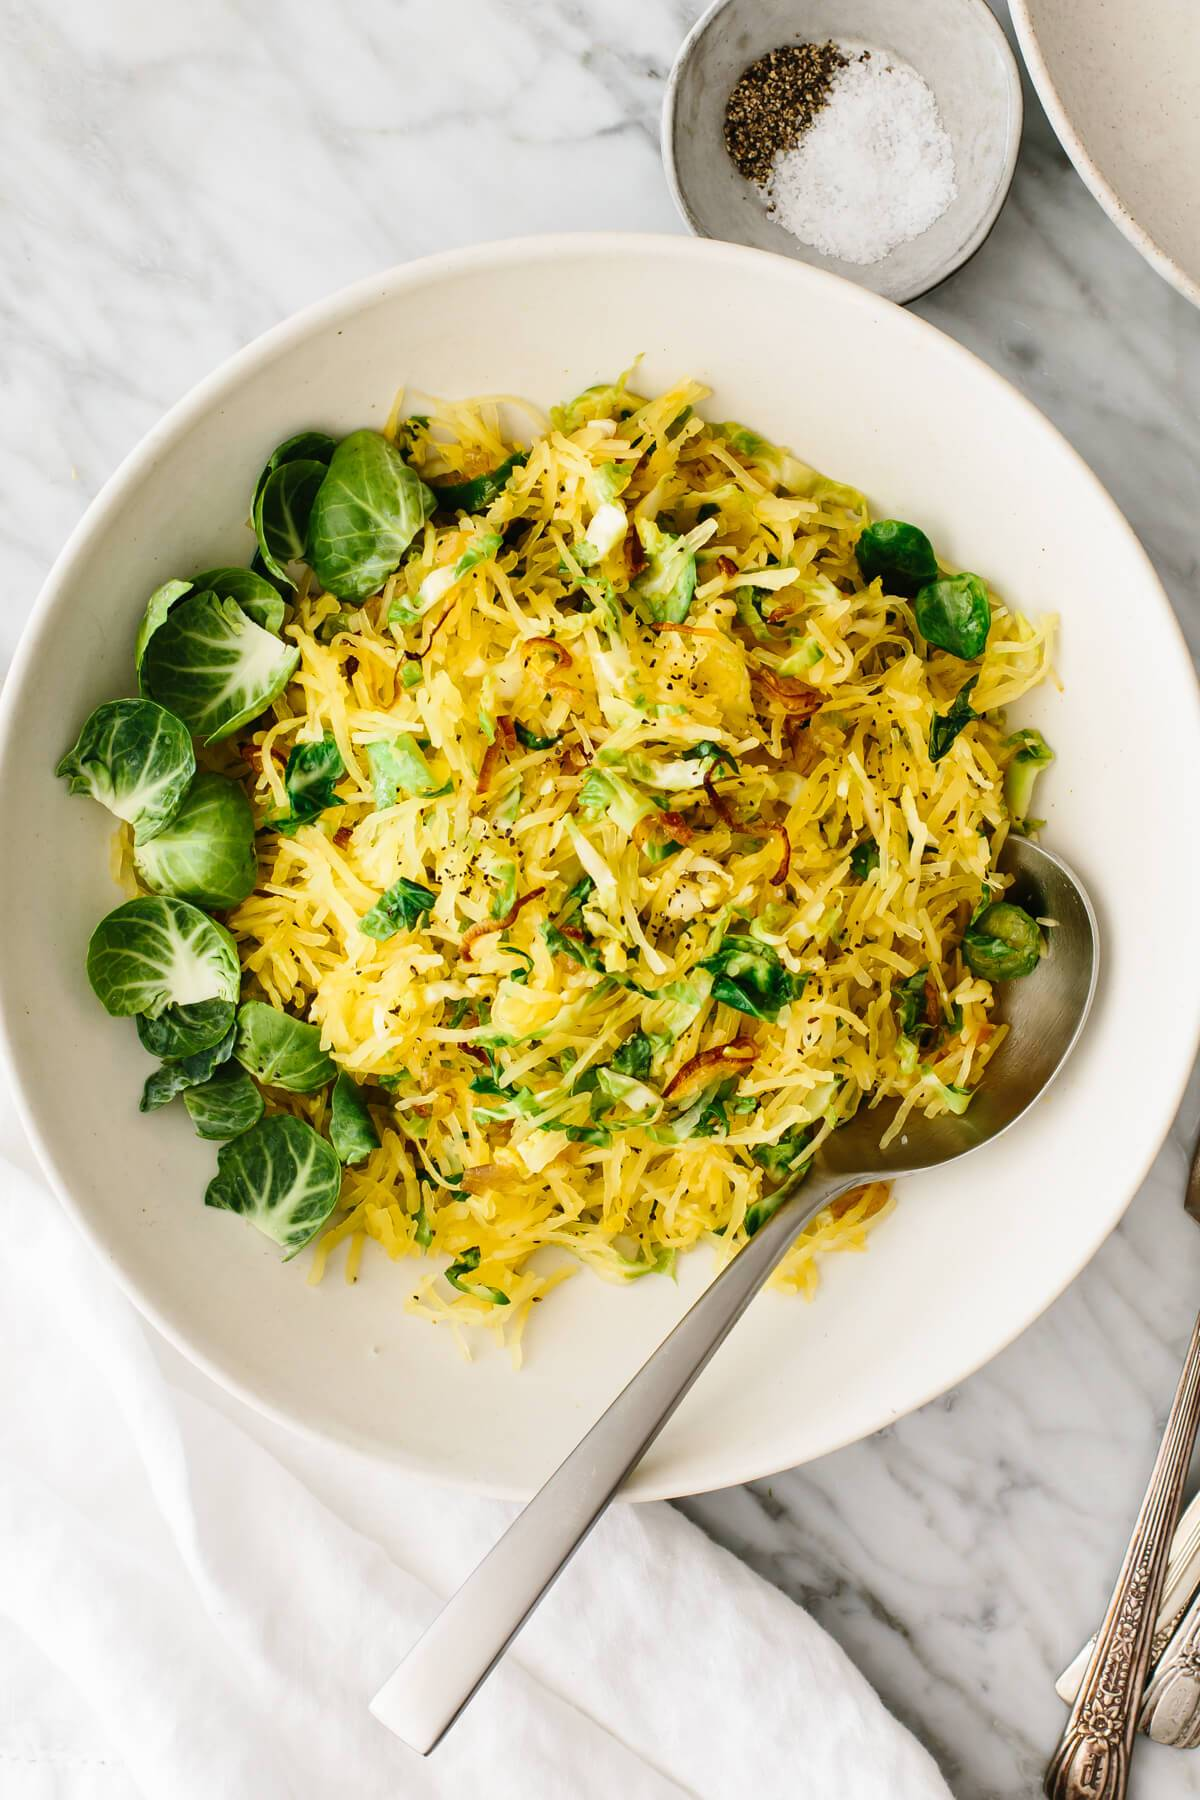 Spaghetti squash, Brussels sprouts, and crispy shallots side dish in a bowl.